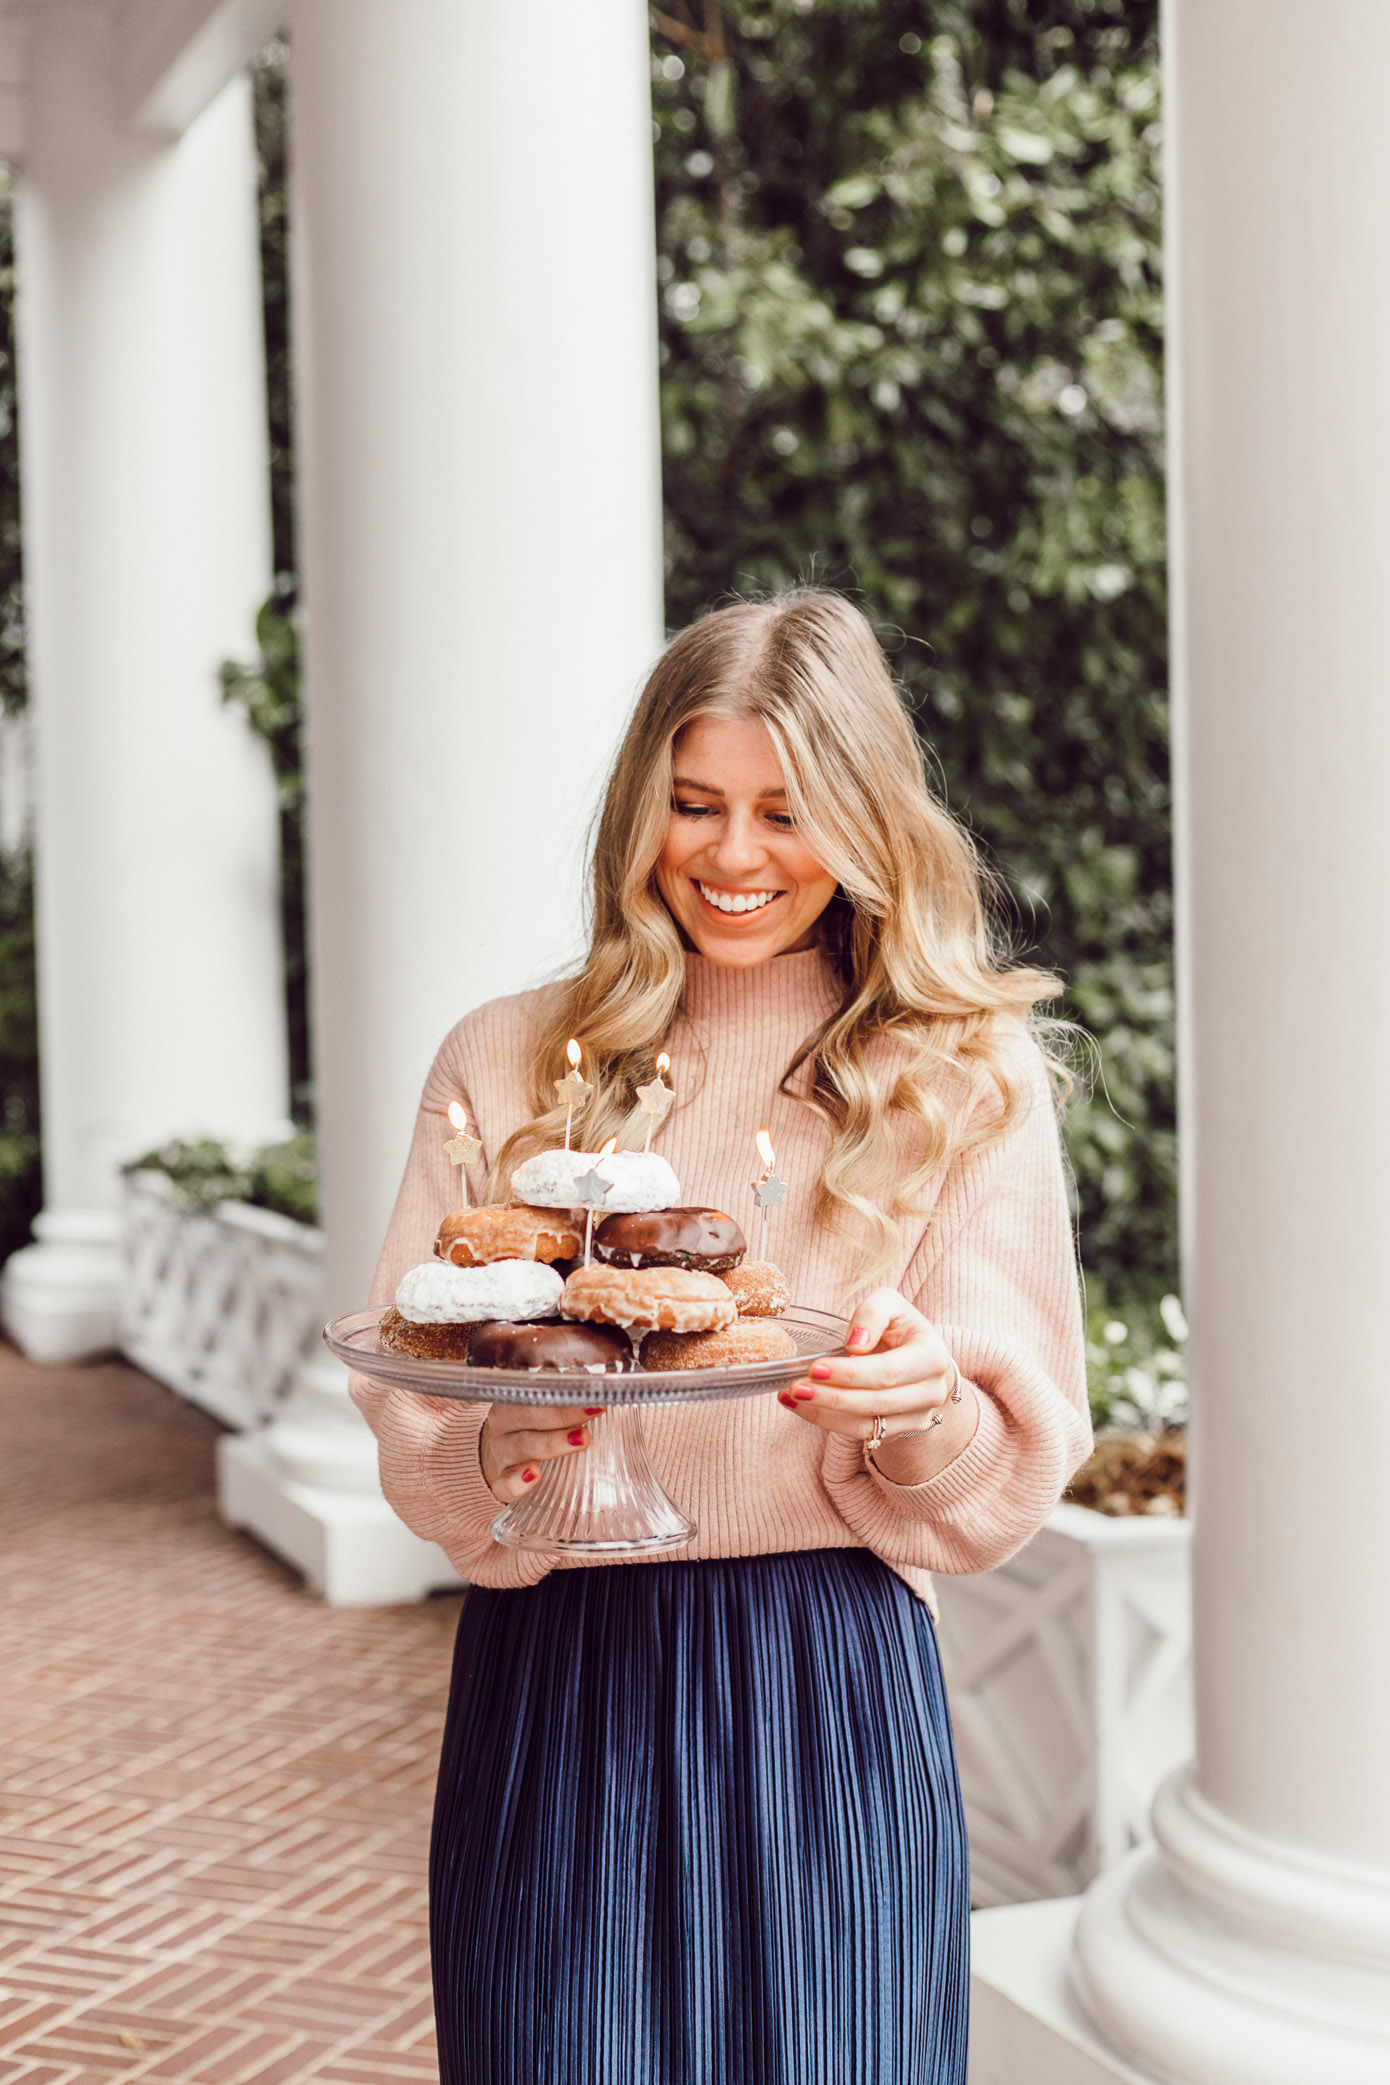 29 Life Lessons Learned featured on Louella Reese Blog for her 29th Birthday | Donut Cake